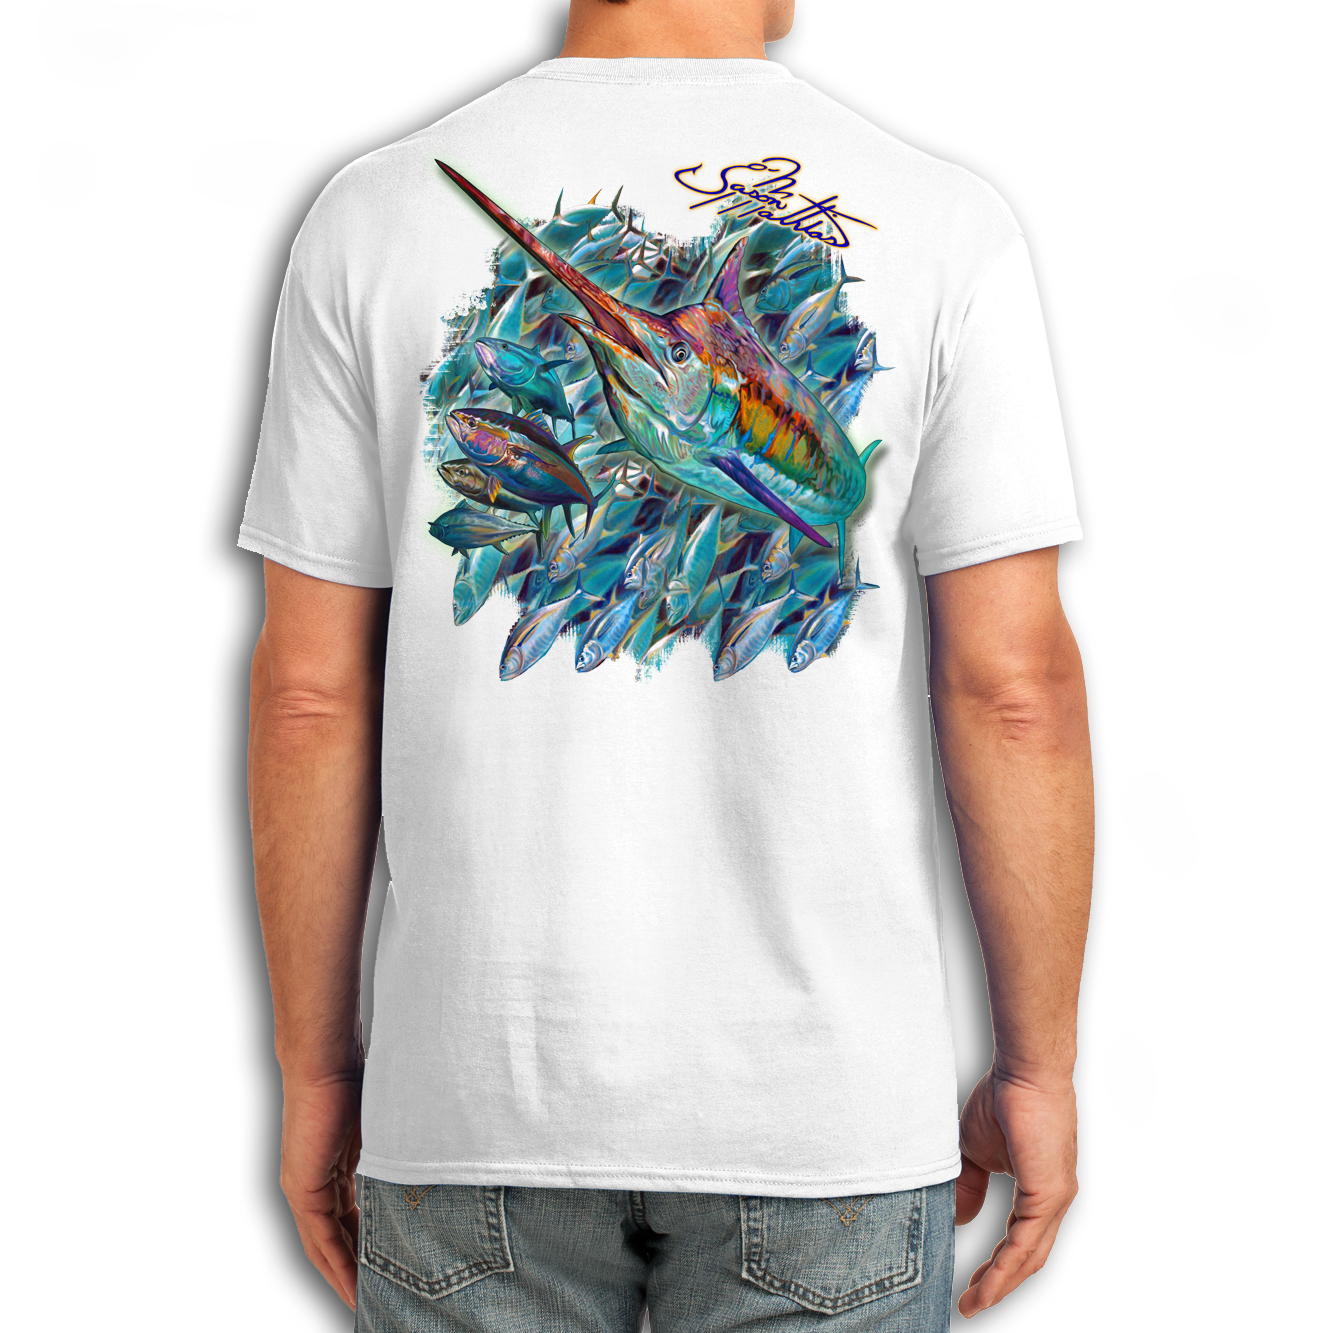 t-shirt-short-sleeve-white-jason-mathias-art-marlin-tuna-school.png